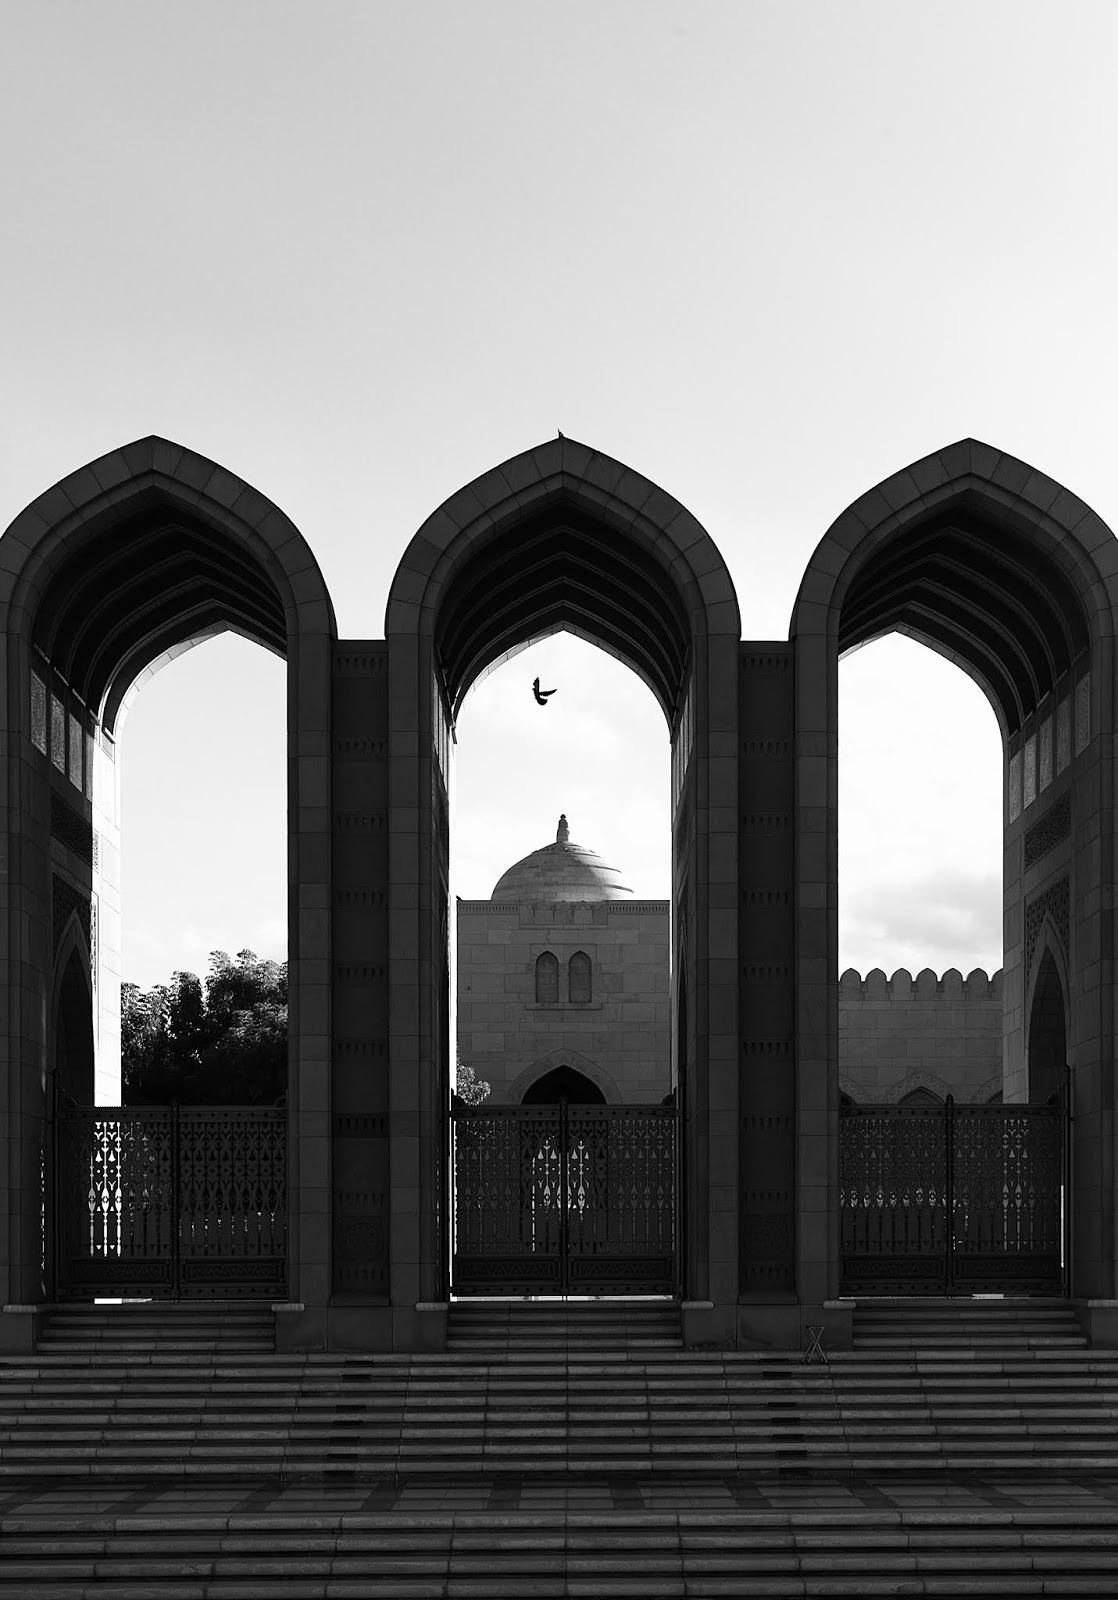 Photo 2: Grande Mosquée du Sultan Qaboos